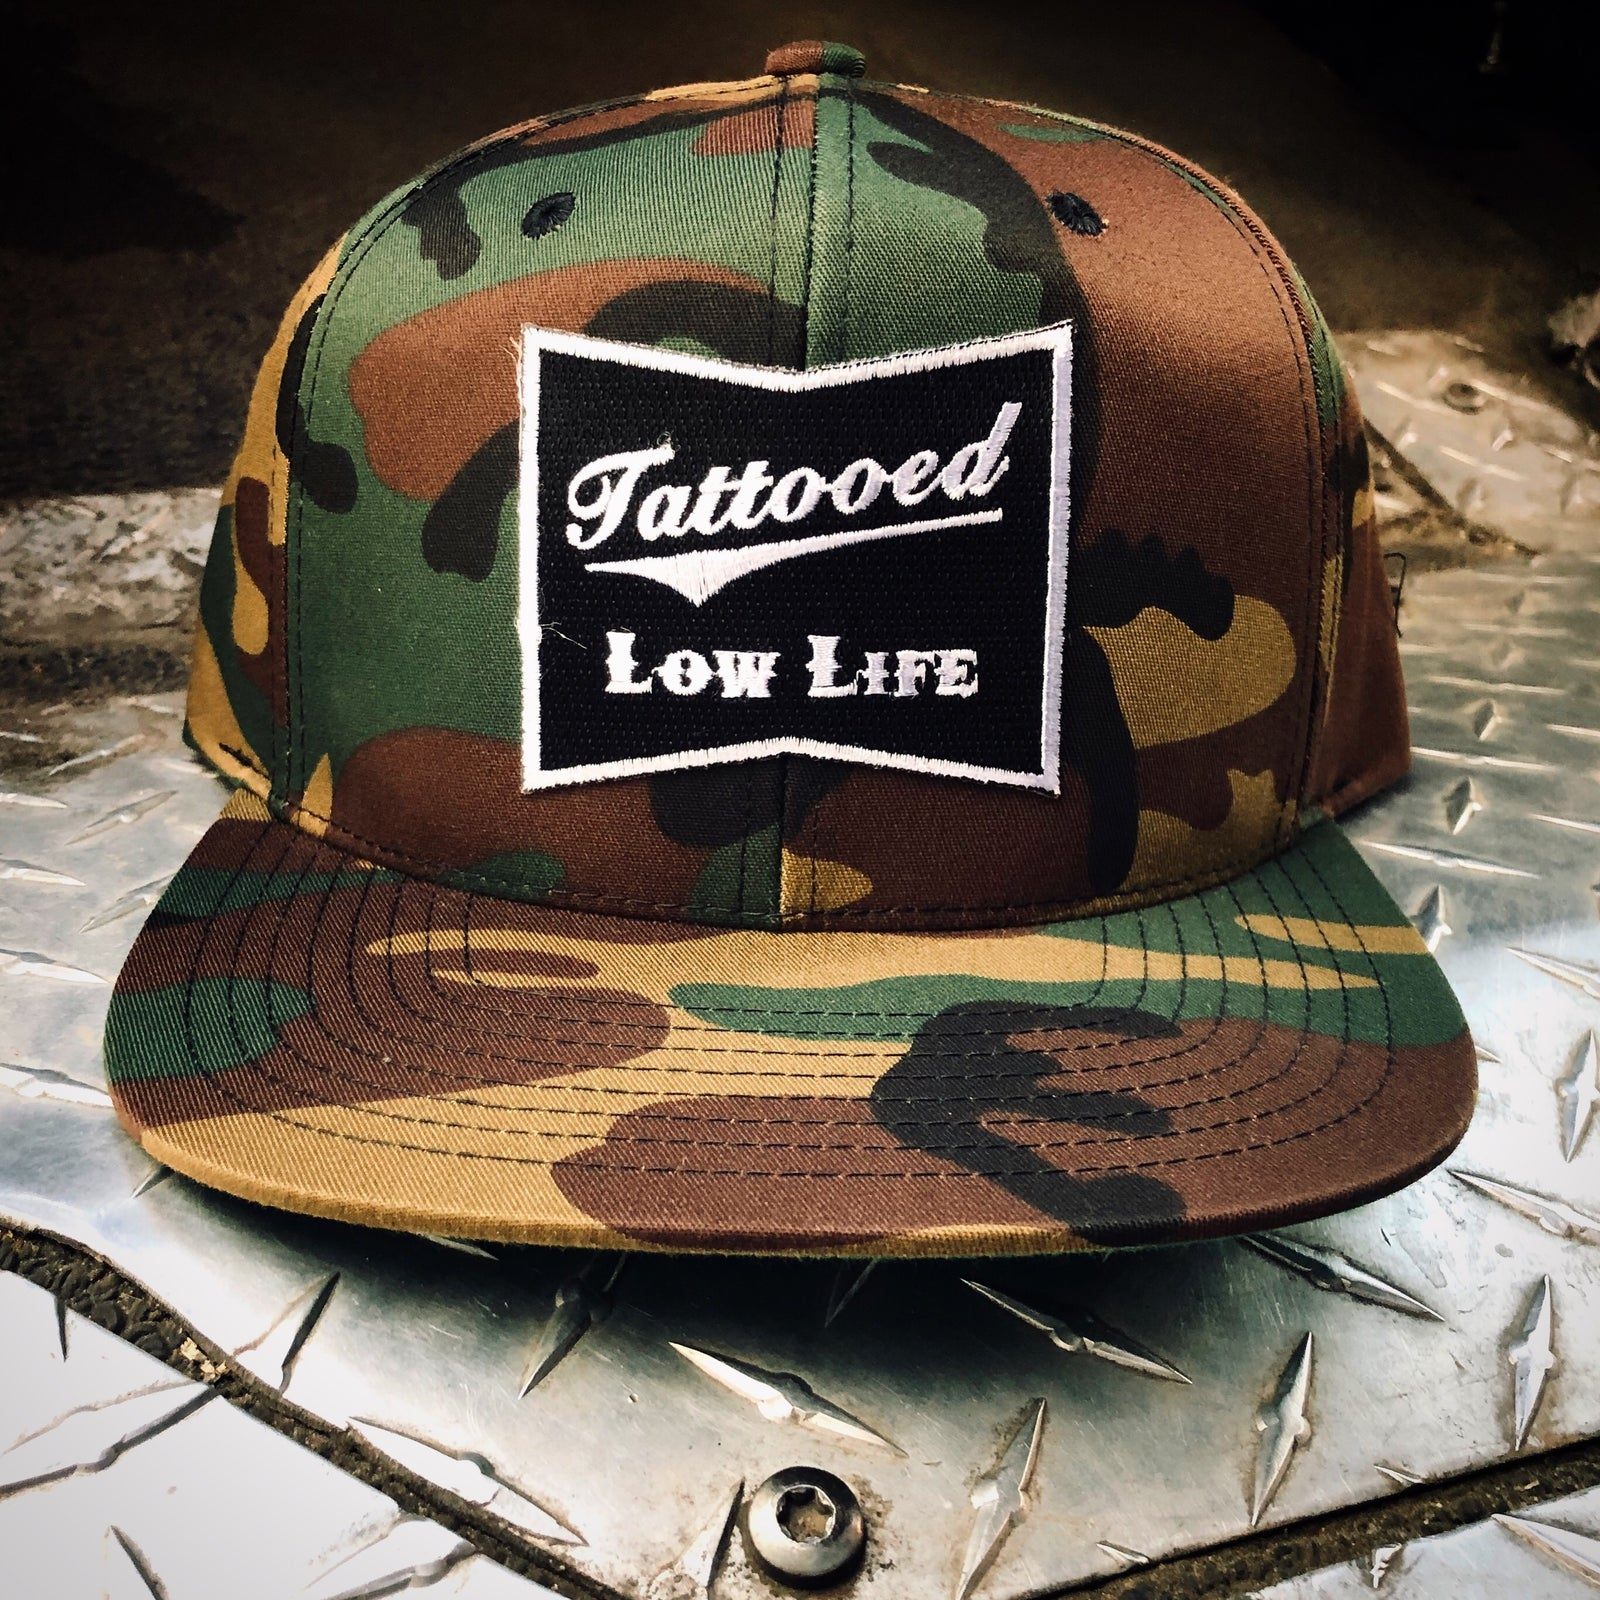 OG Tattooed Low Life Embroidered Patch Camouflage Snapback Hat